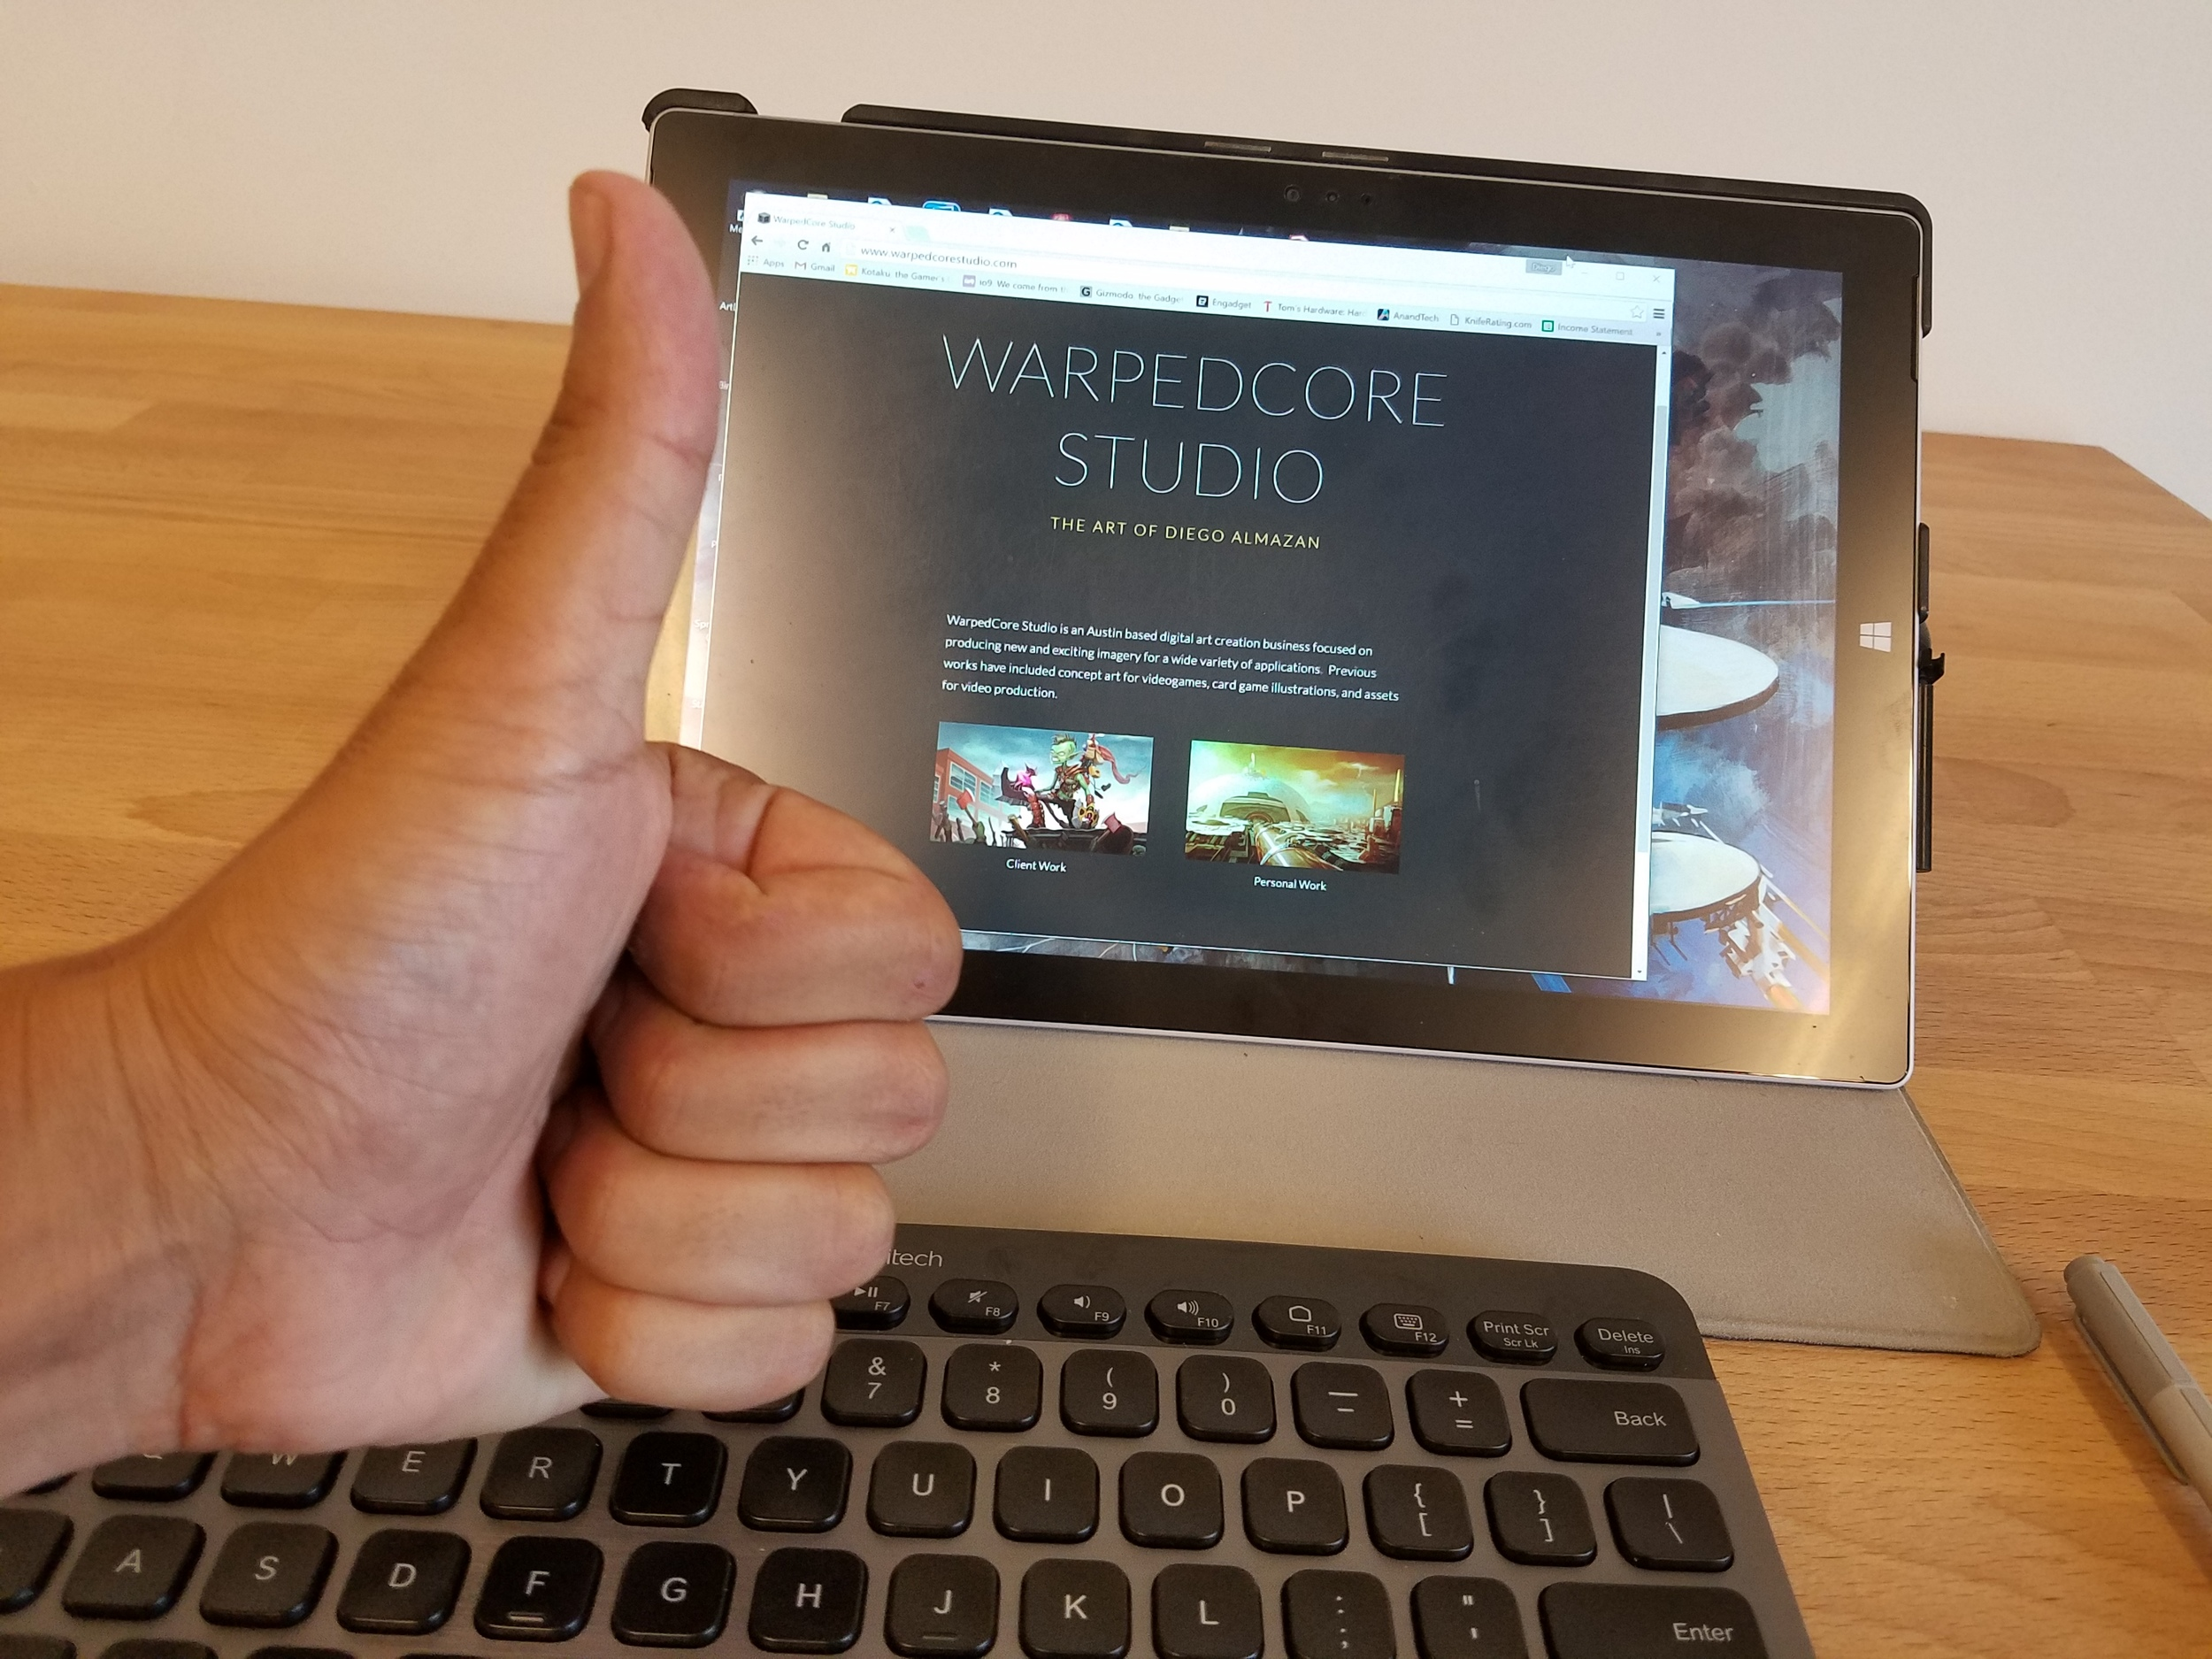 WarpedCoreStudio.com is a go!